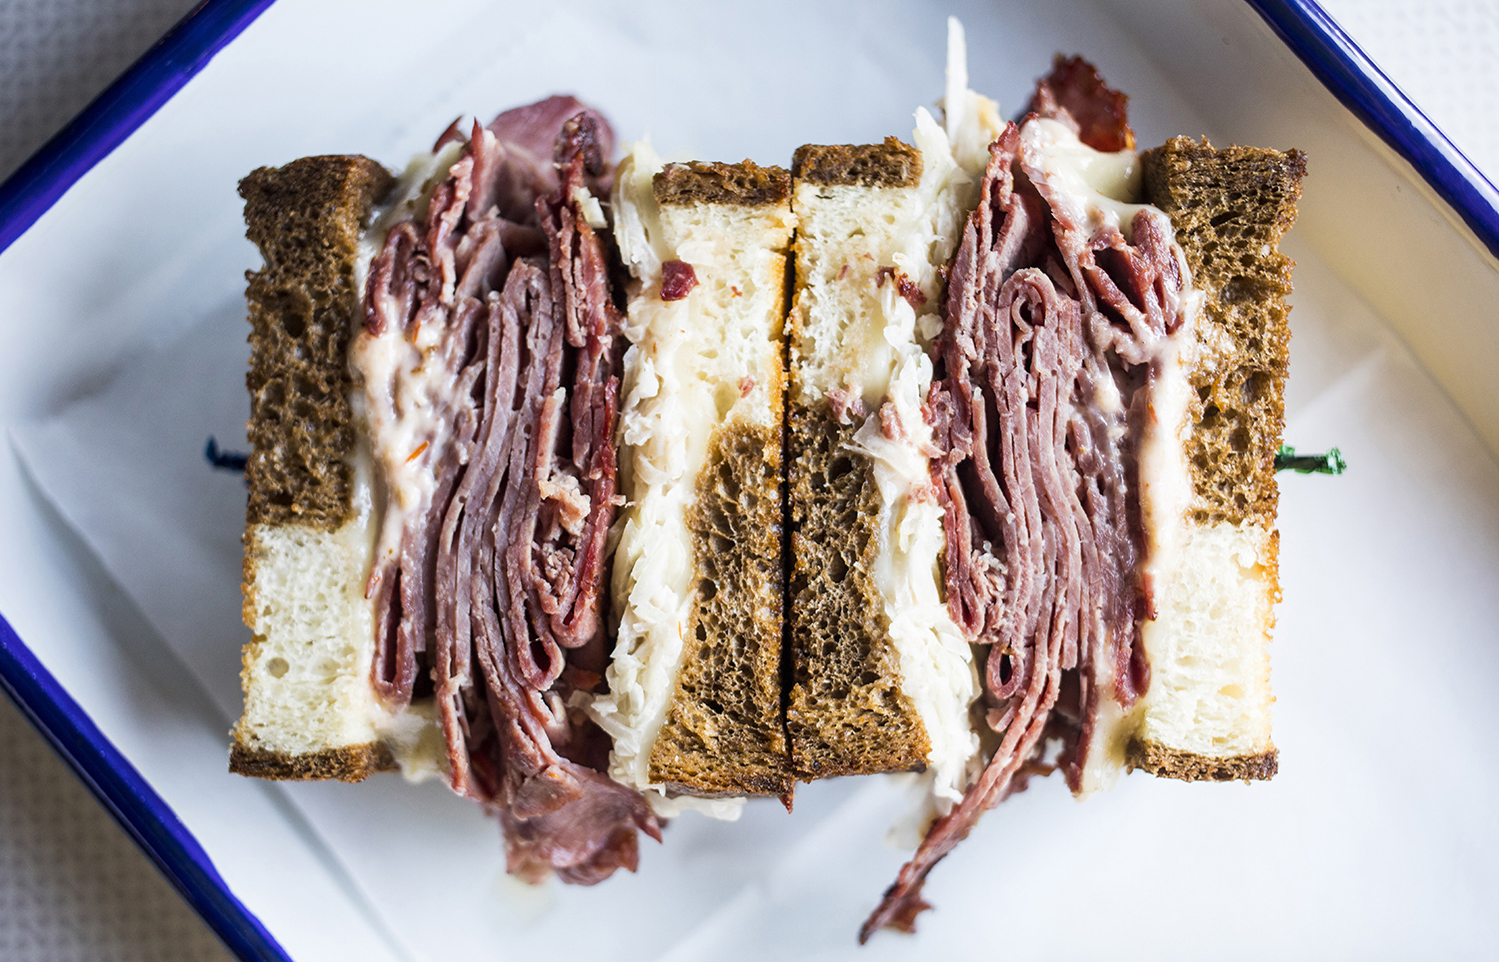 Meyvn's Reuben sandwich // Photo by Tj Turner